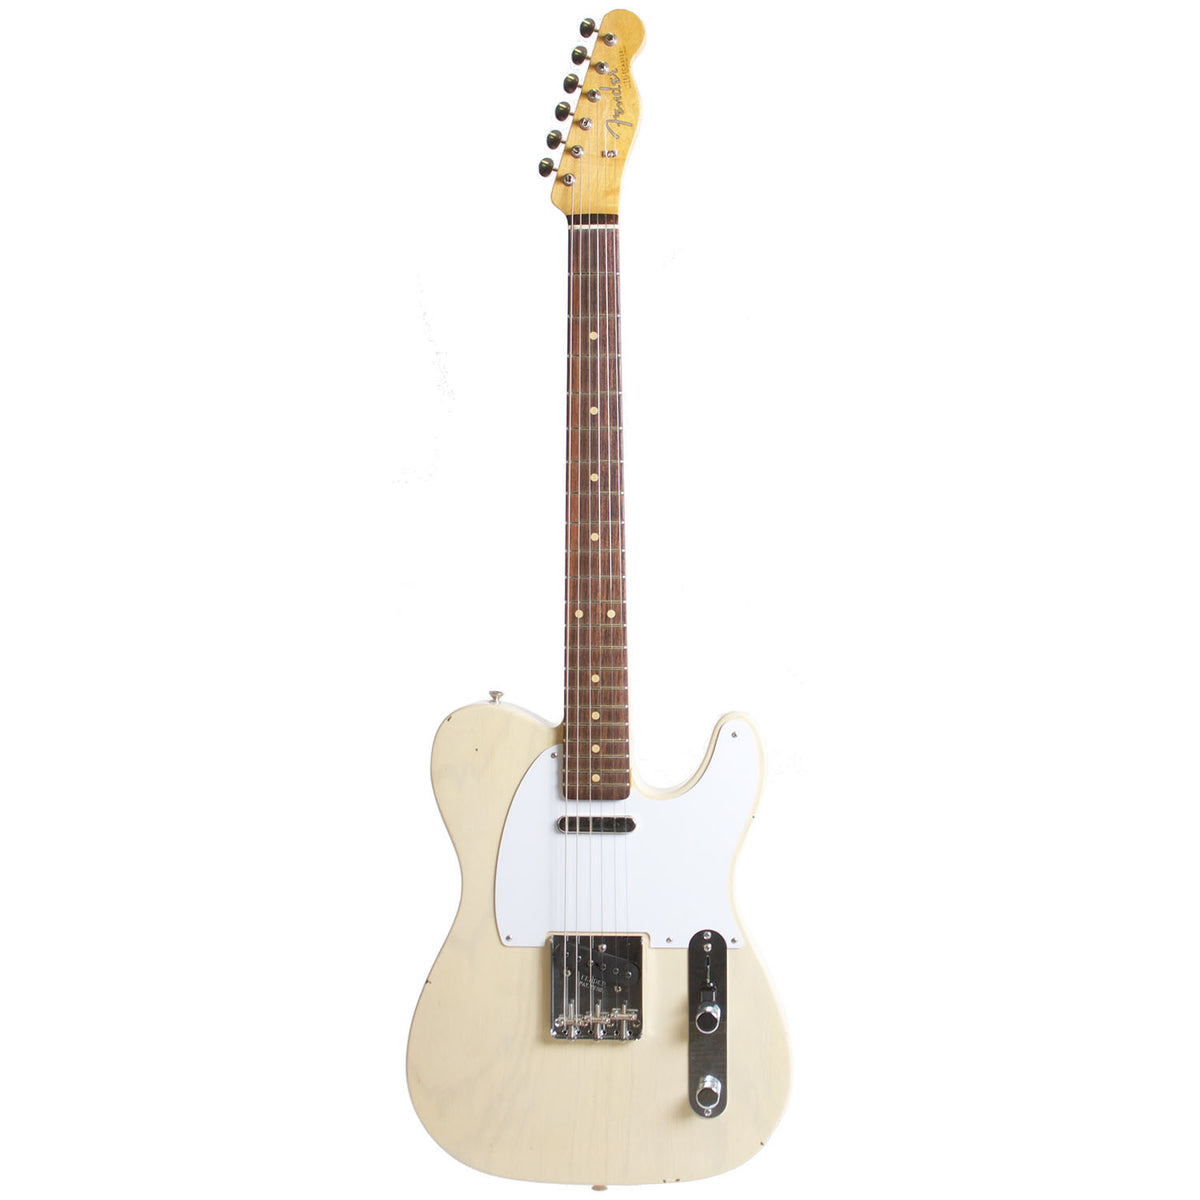 2015 Fender Custom Shop Junkyard Dog '62 Telecaster, Journeyman Relic - Garrett Park Guitars  - 3